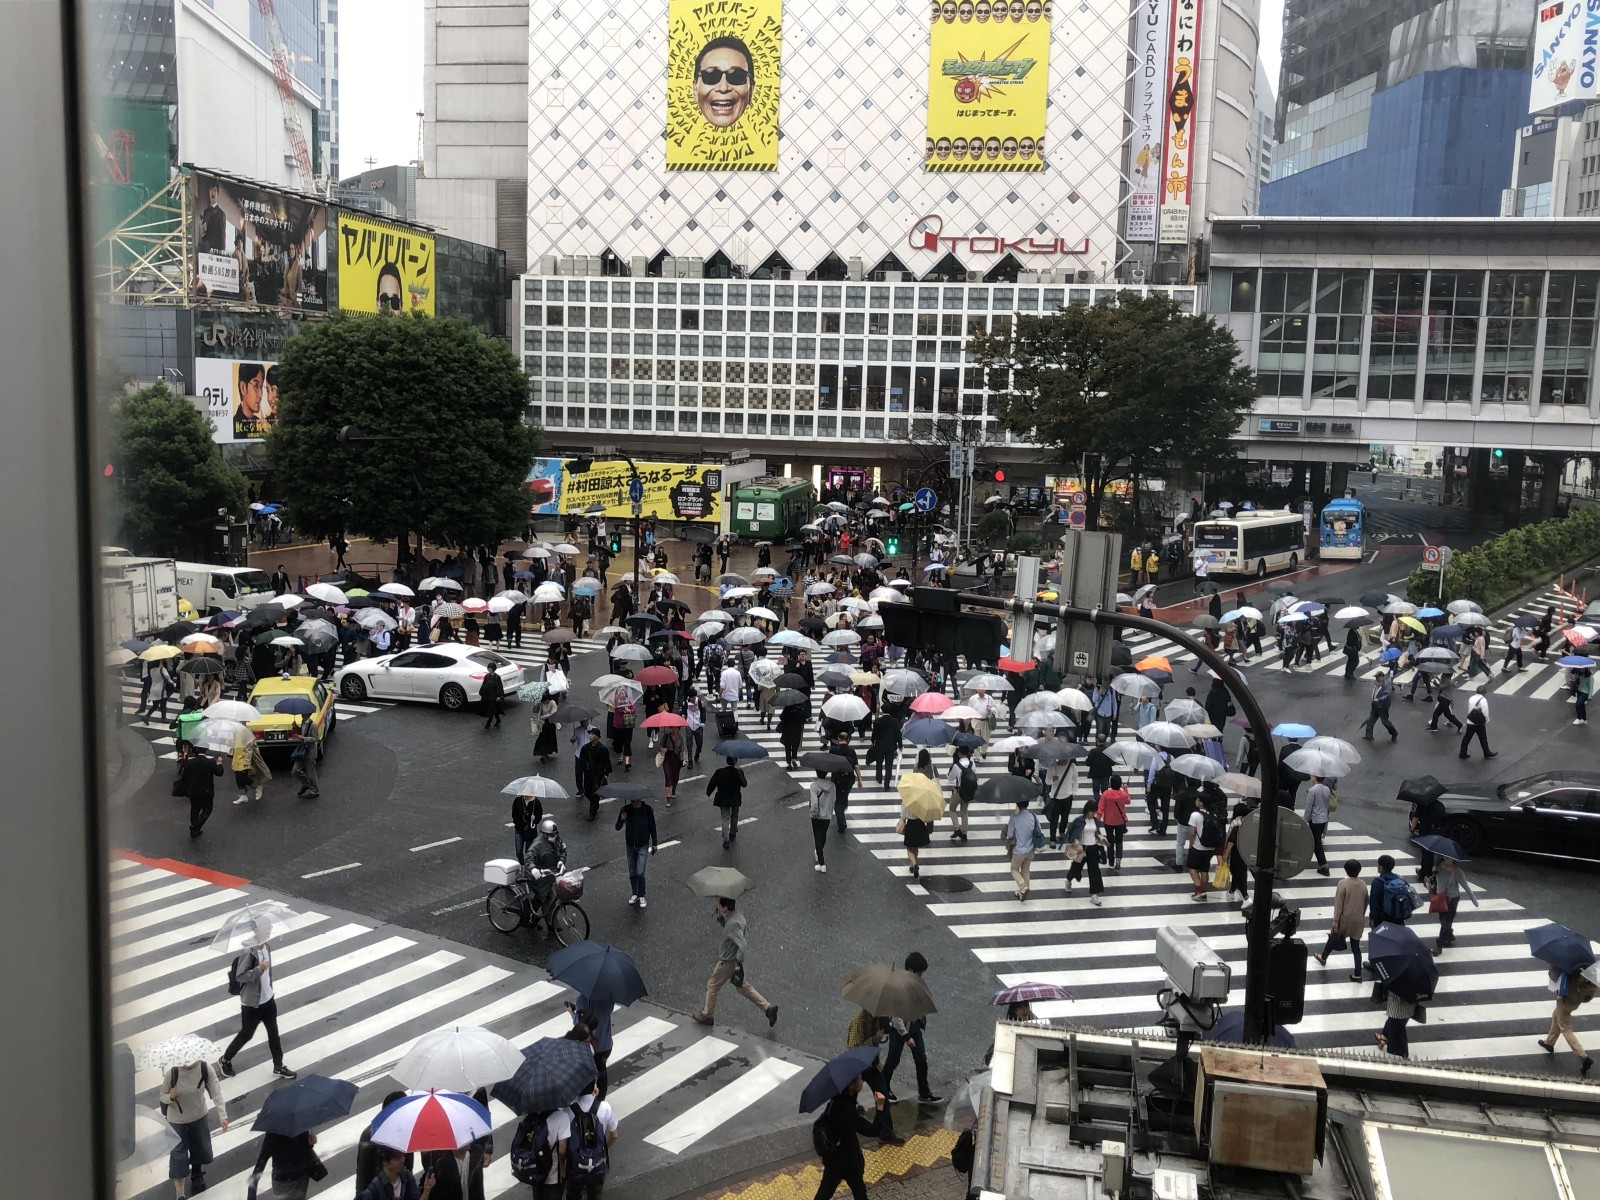 The view of Shibuya Crossing from STARBUCKS Shibuya Tsutaya store